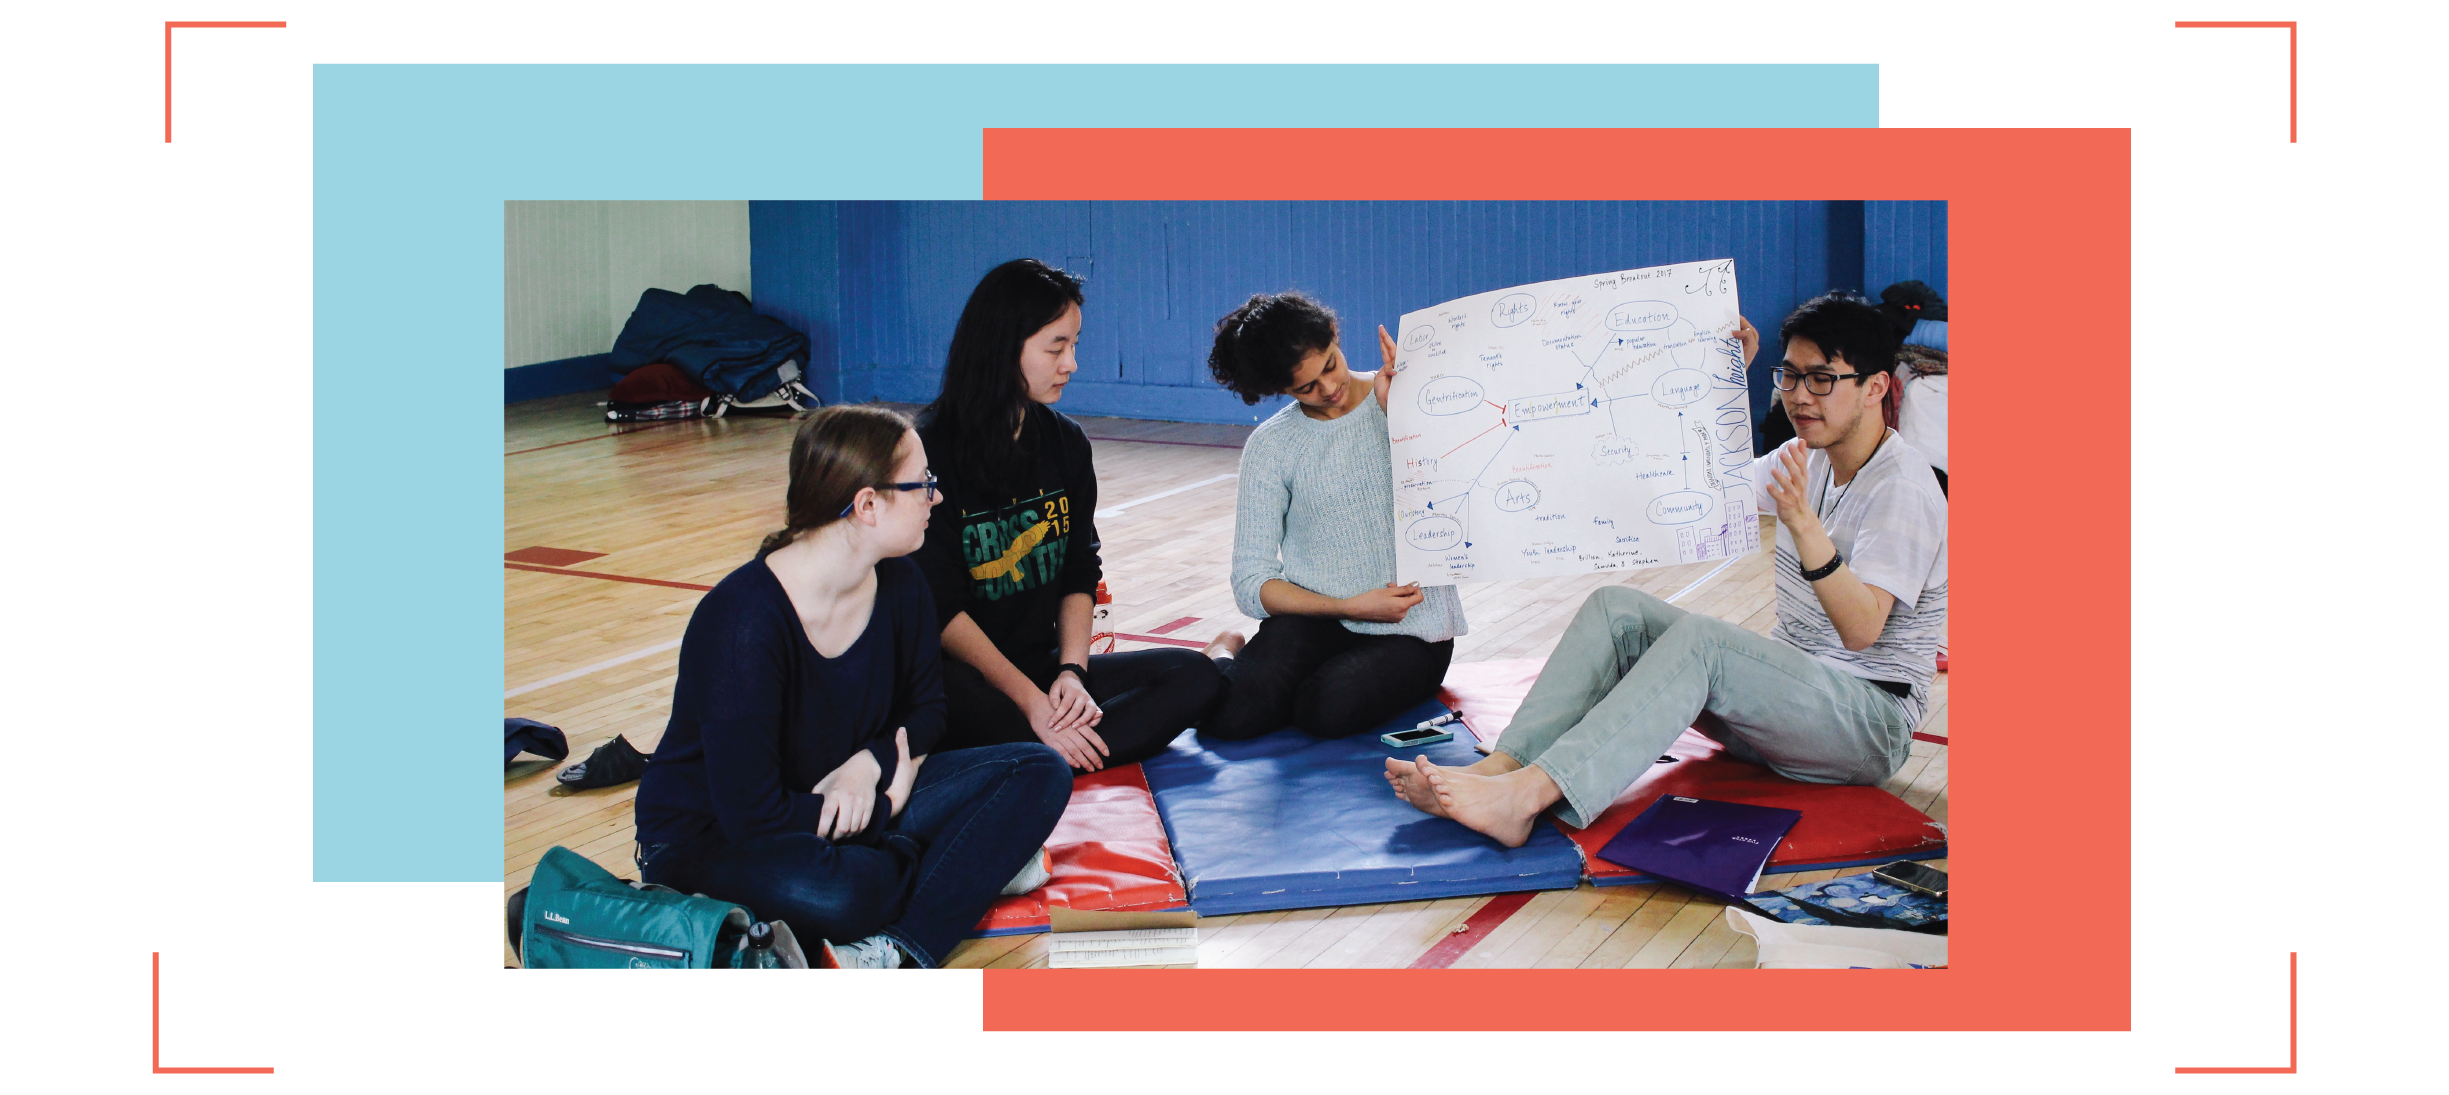 Princeton Students sitting on the ground in a circle, and holding up a handwritten bubble diagram showing the result of a brainstorming collaboration